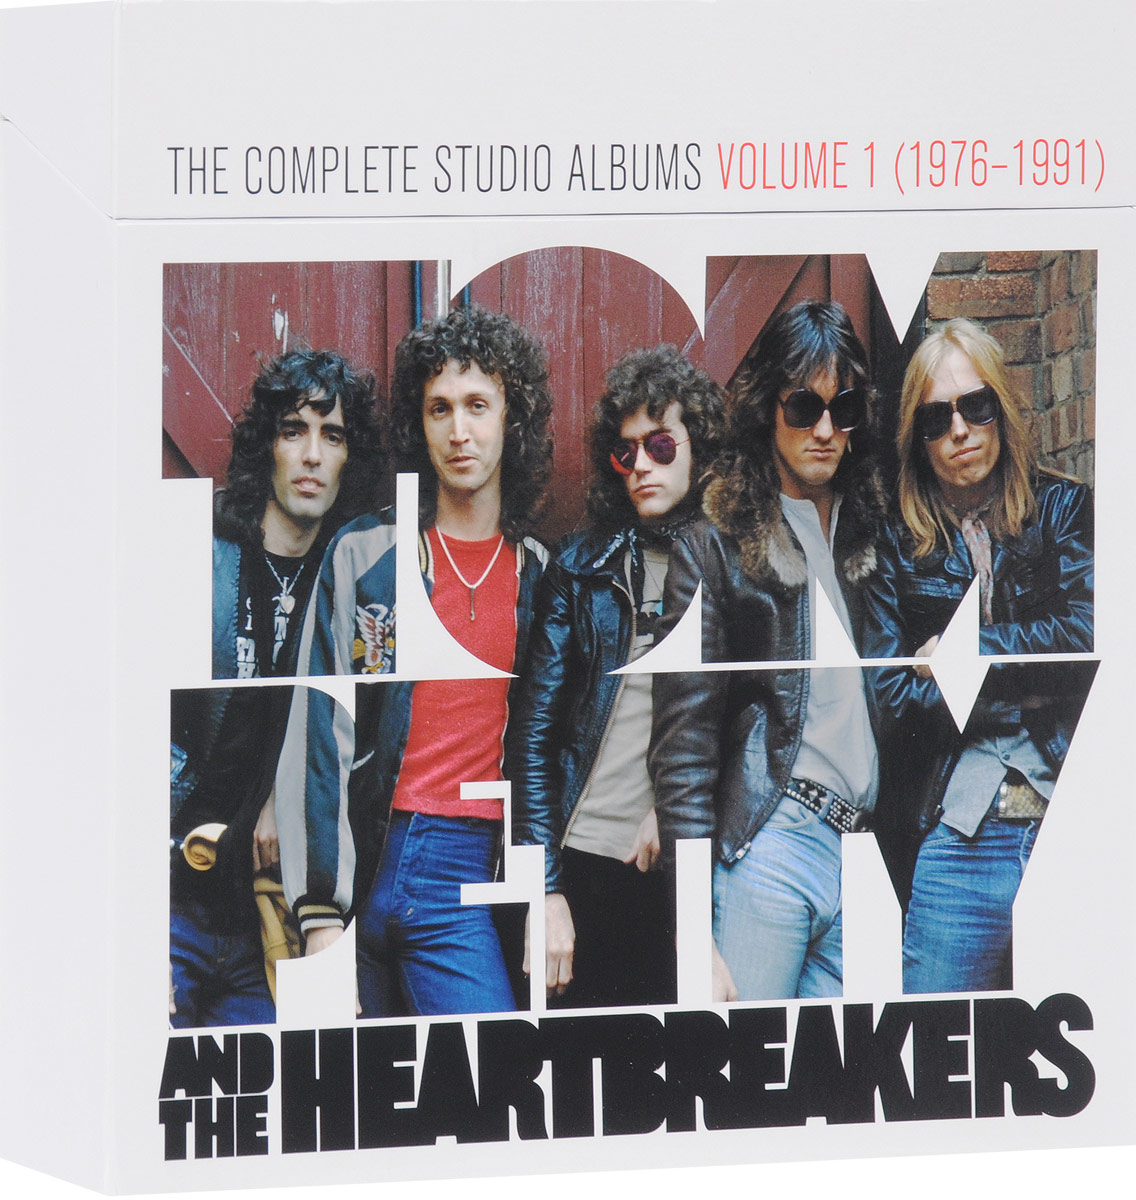 Том Петти,The Heartbreakers Tom Petty And The Heartbreakers. The Complete Studio Albums. Volume 1. (1976-1991) (9 LP) victor 1a097 size4 10 5 3 5 9 bbs 1a